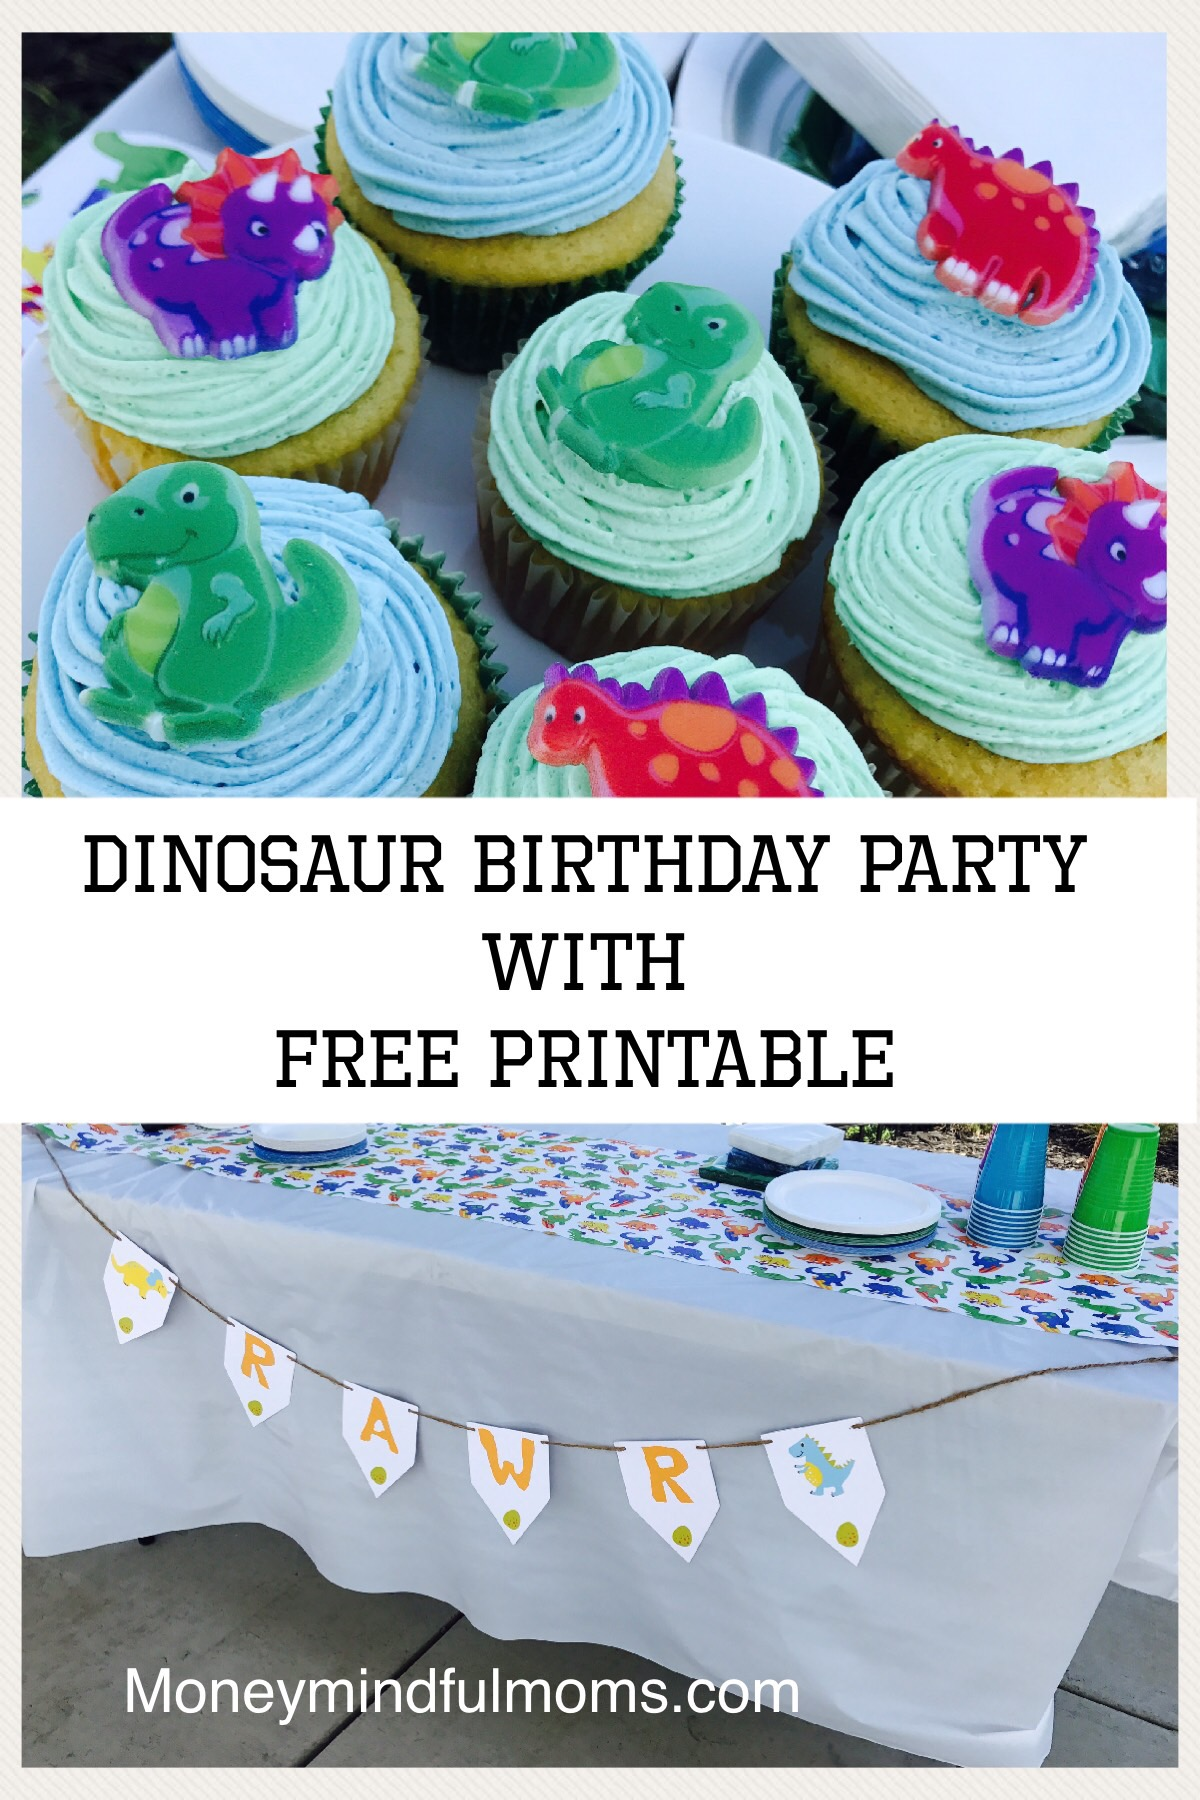 Dinosaur Birthday Party on a Budget